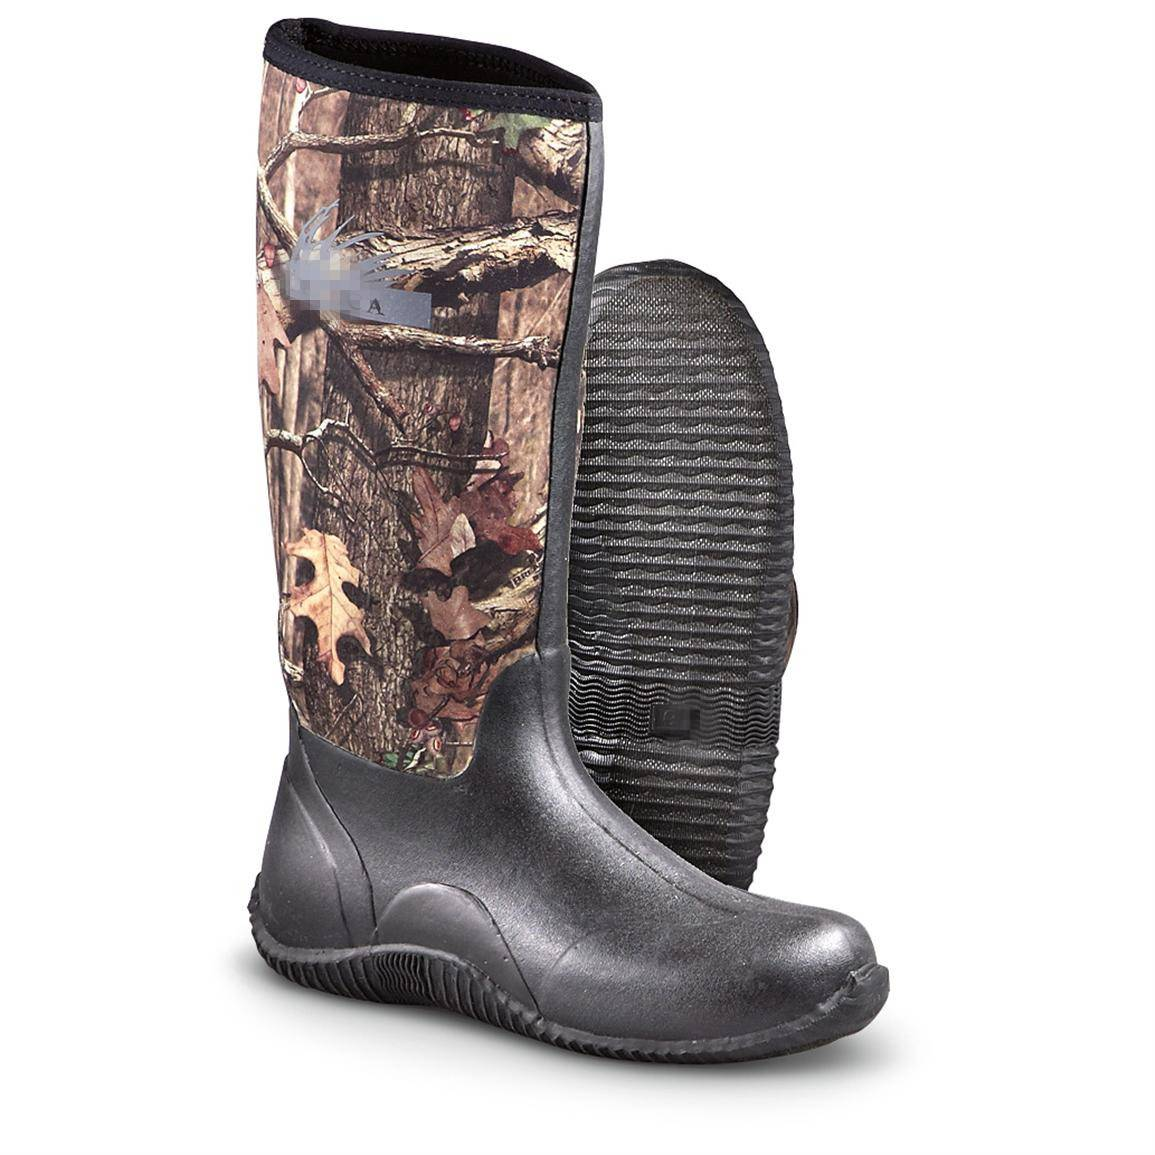 Mens Lightweight Camouflage/Camo Neoprene Hunting Boots